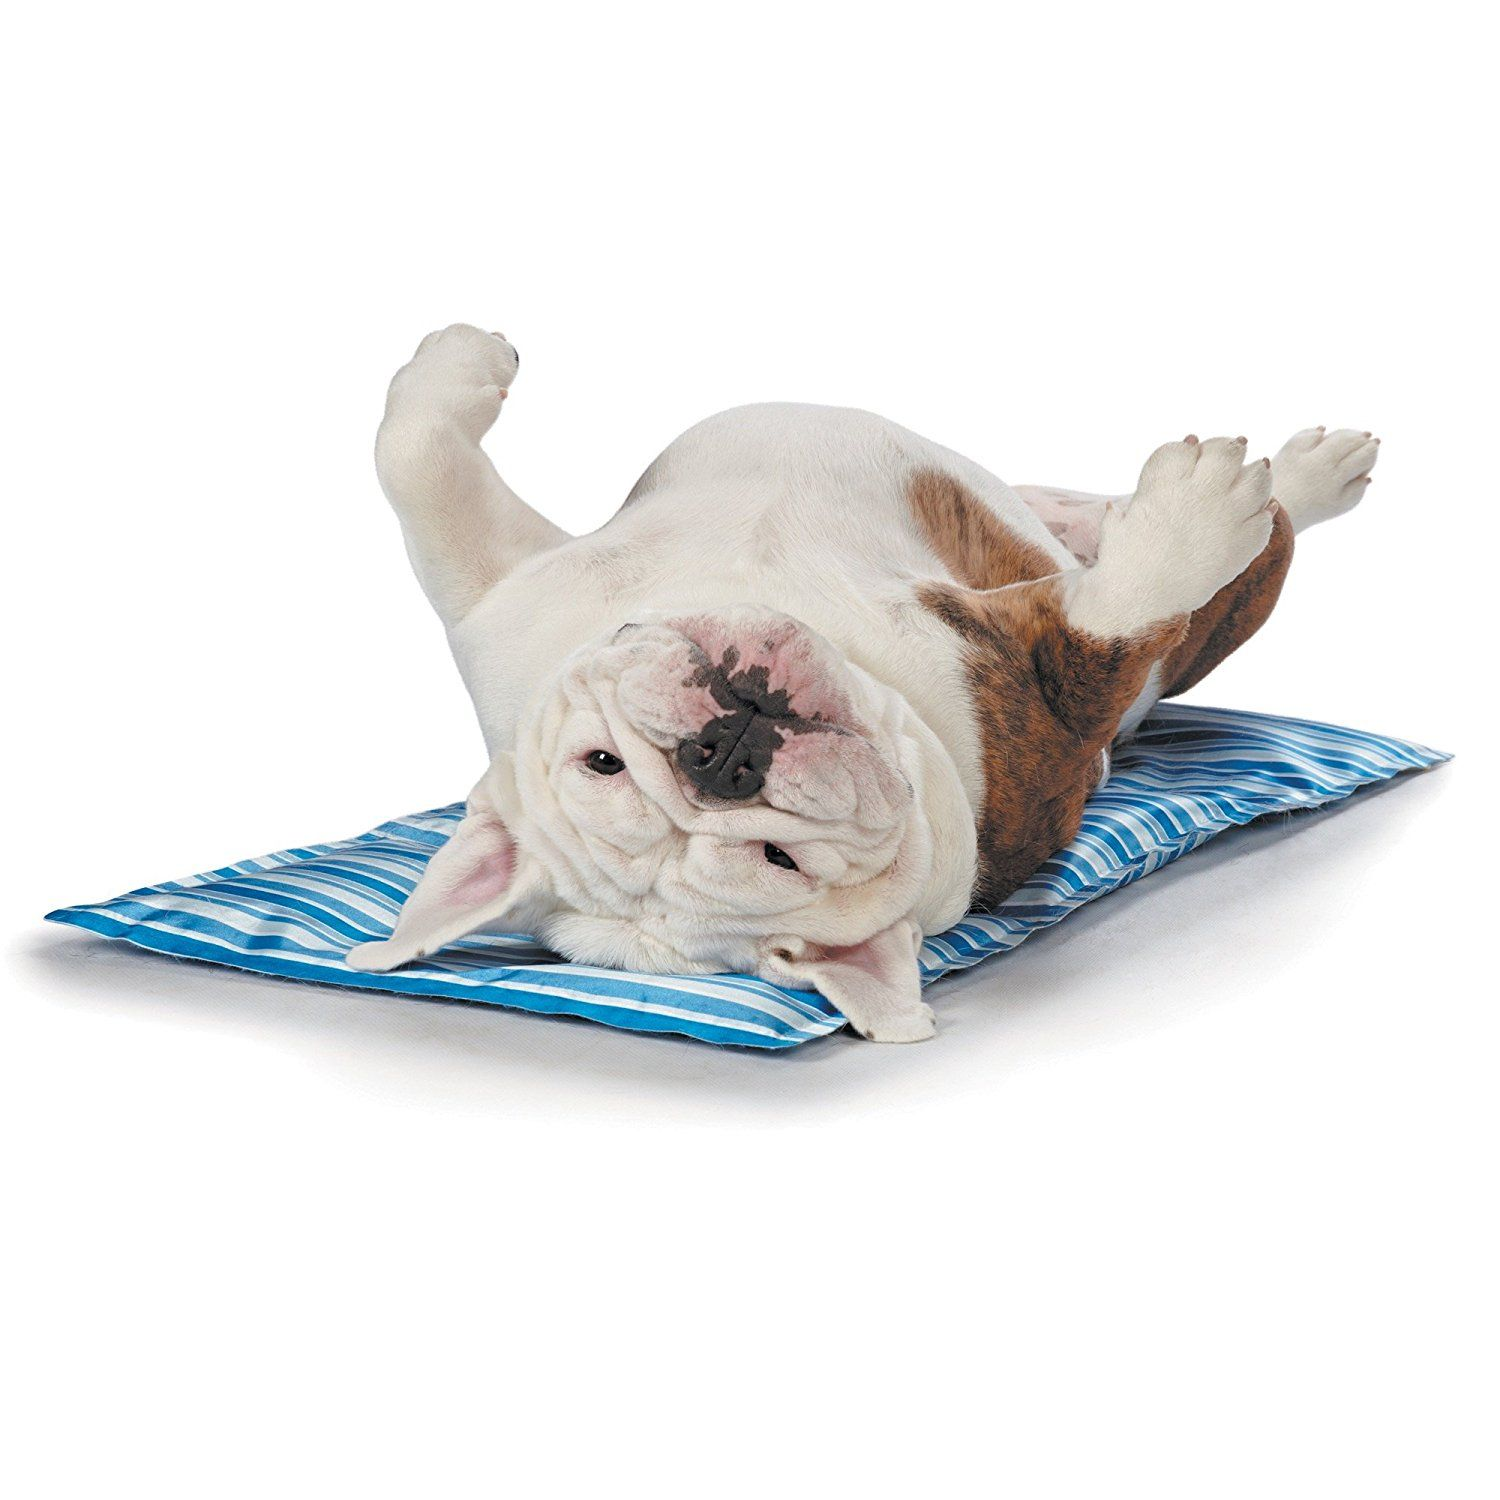 Amazon Com Cool Pup Mats Comfortable And Innovative Mats Designed To Keep Dogs Cool On Even The Hottest Days Pet Bed Mats Dog Cooling Mat Your Dog